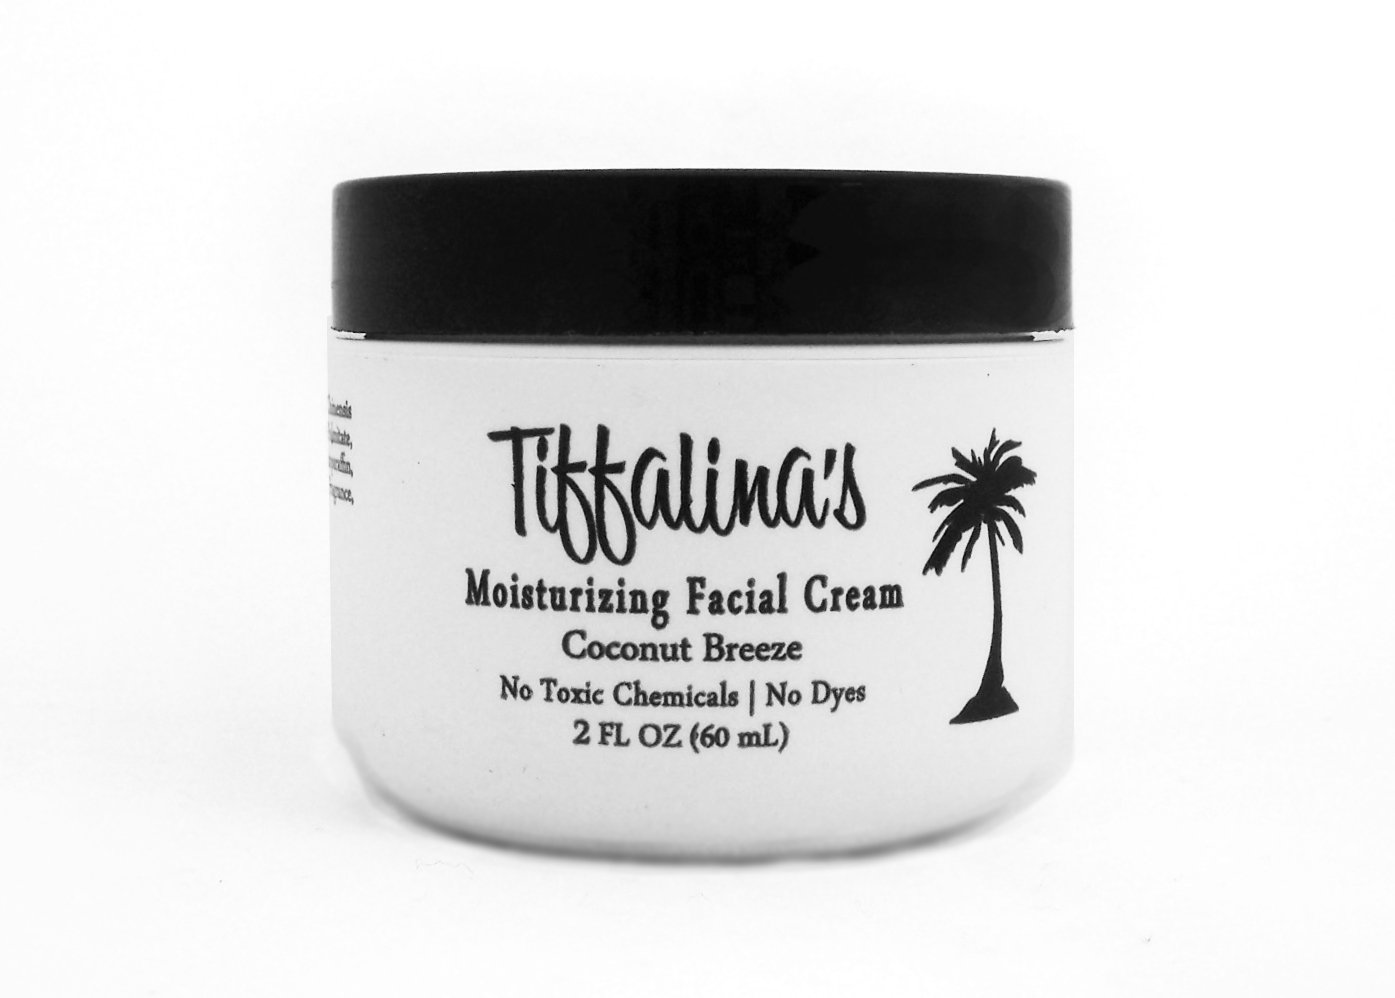 Tiffalina's Moisturizing Facial Cream for Oil Free Diet Plans by Tiffalina's